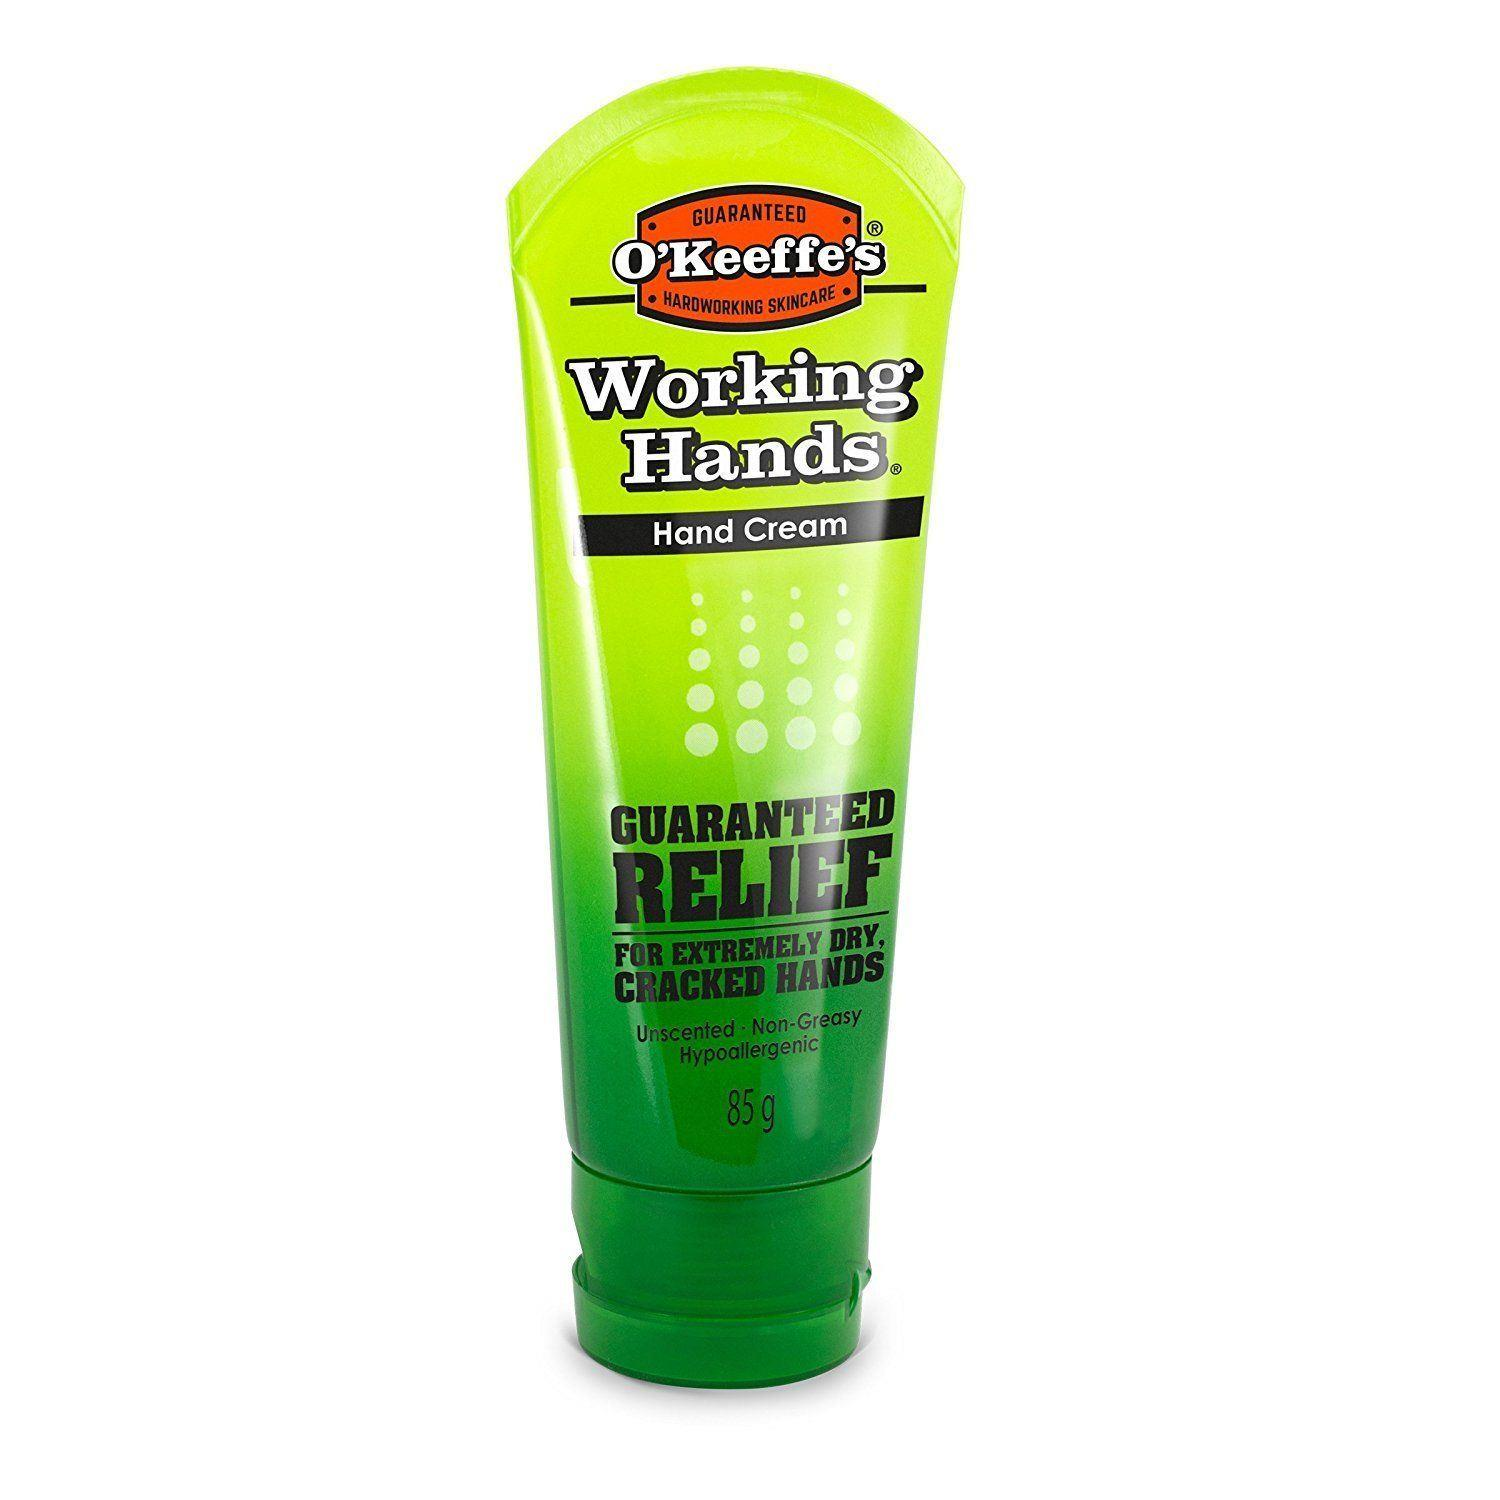 O'Keeffe's Working Hands Tube 85g - For extremely dry, cracked hands